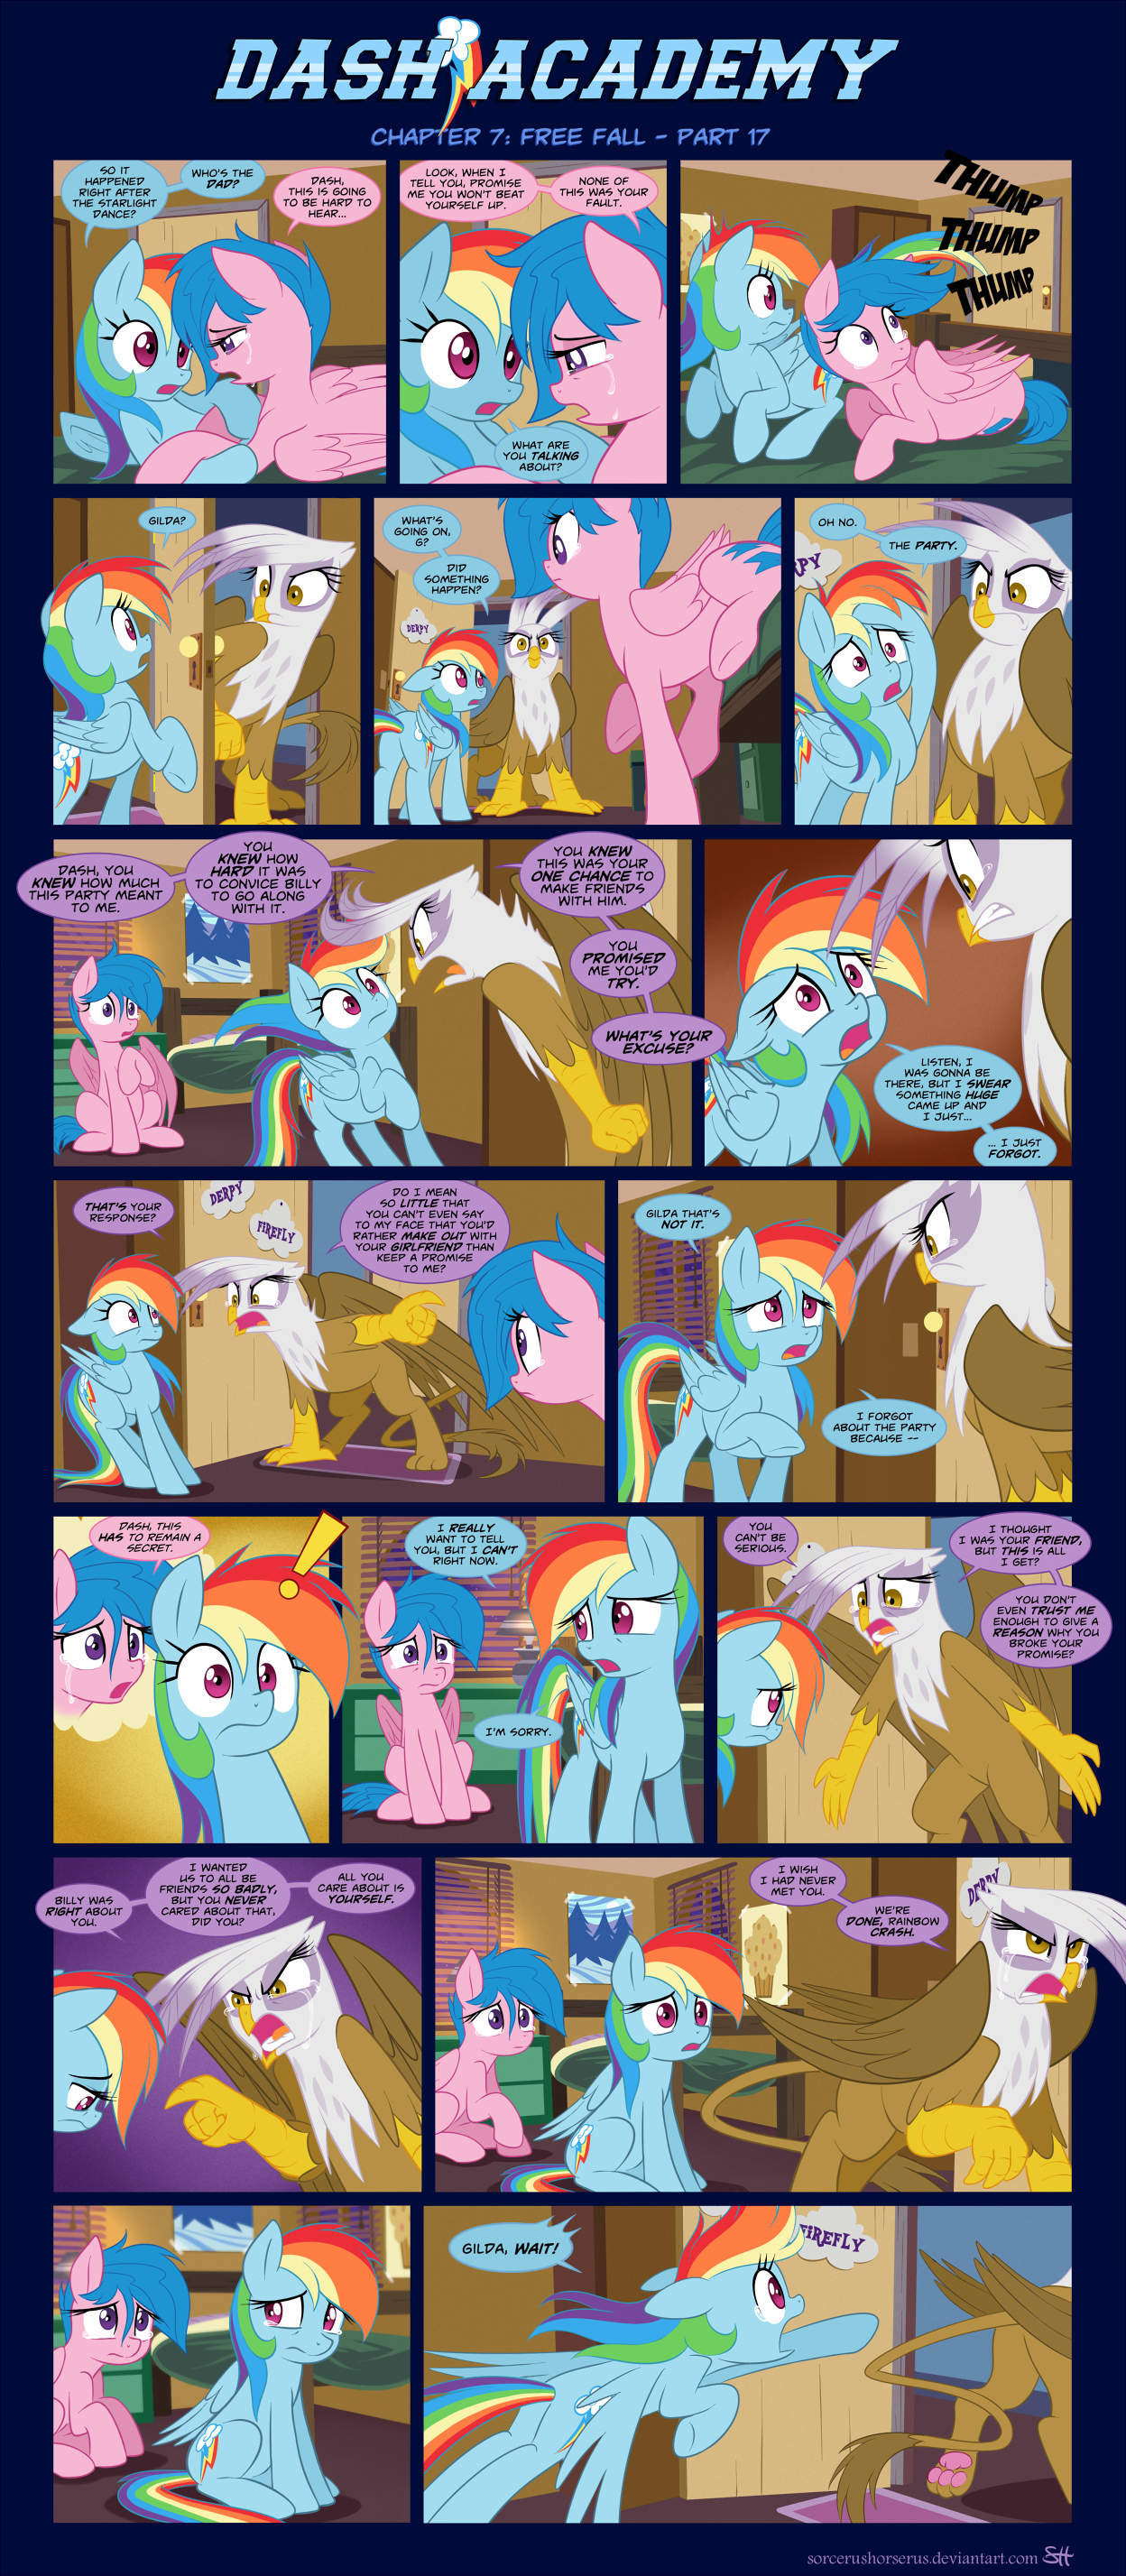 Dash Academy Chapter 7 - Free Fall #17 by SorcerusHorserus